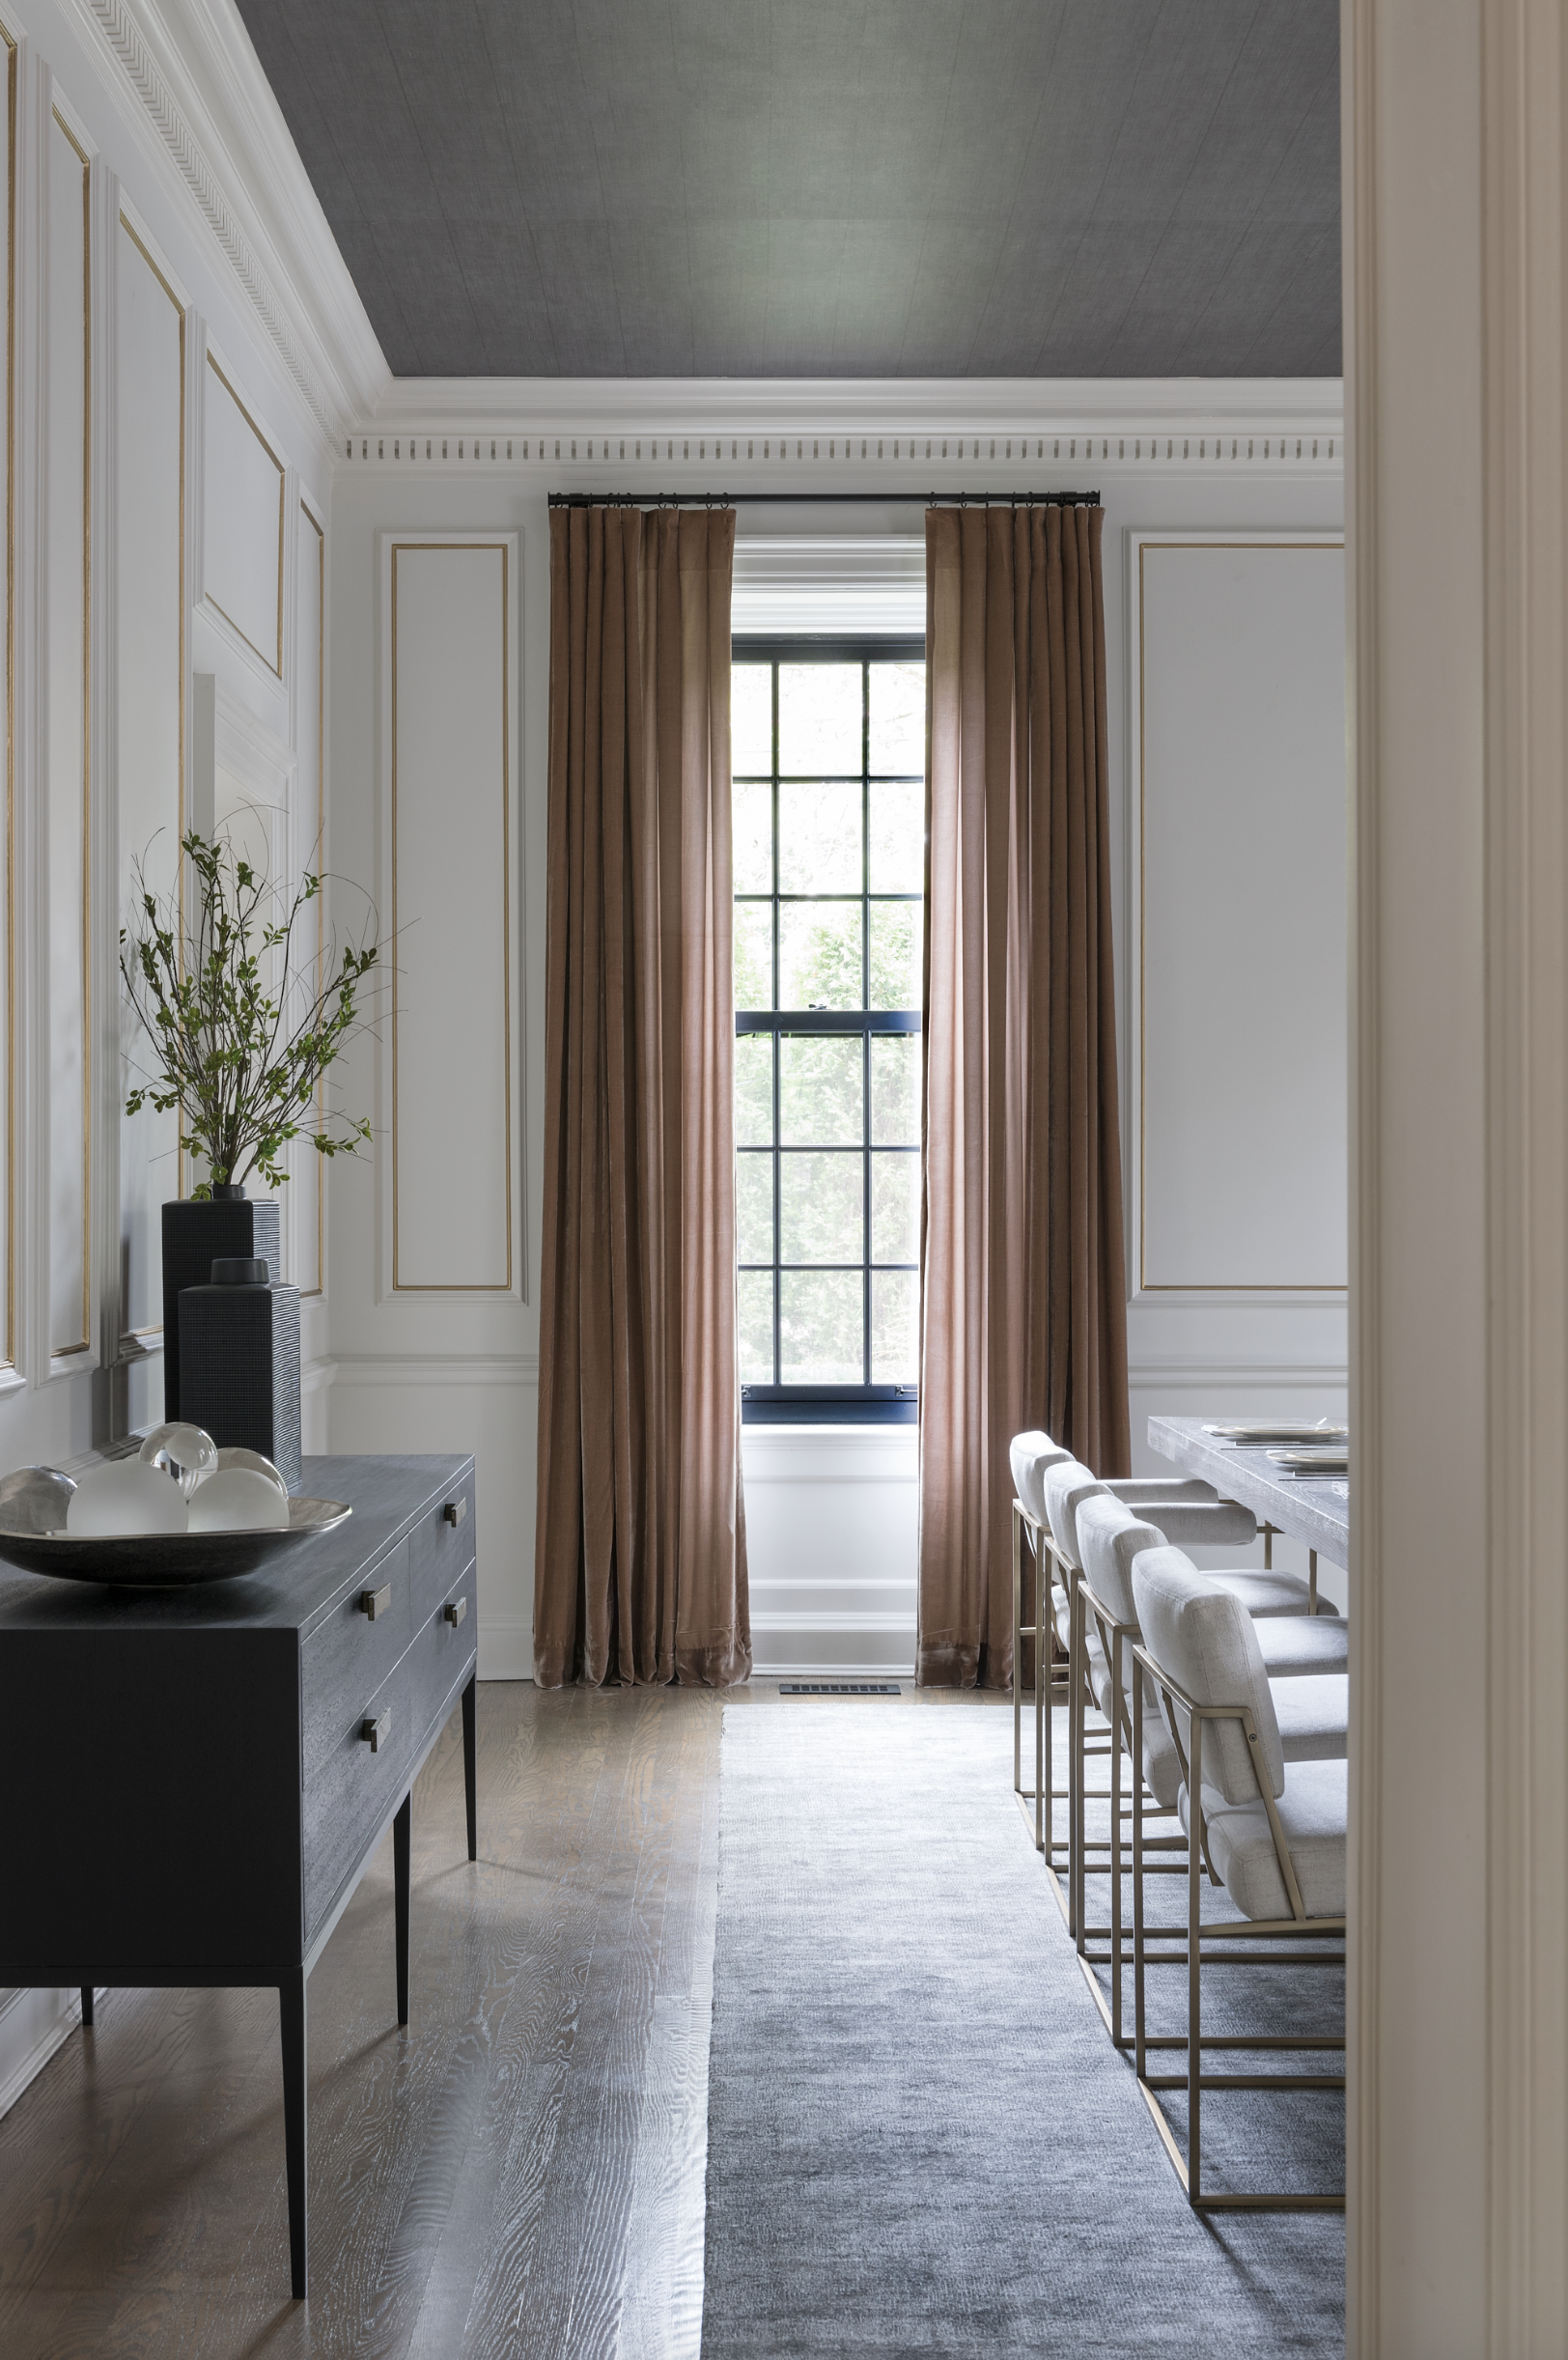 Ceiling Trends that Make a Major Statement | high dining room ceilings with dark wallpaper | The Identite Collective